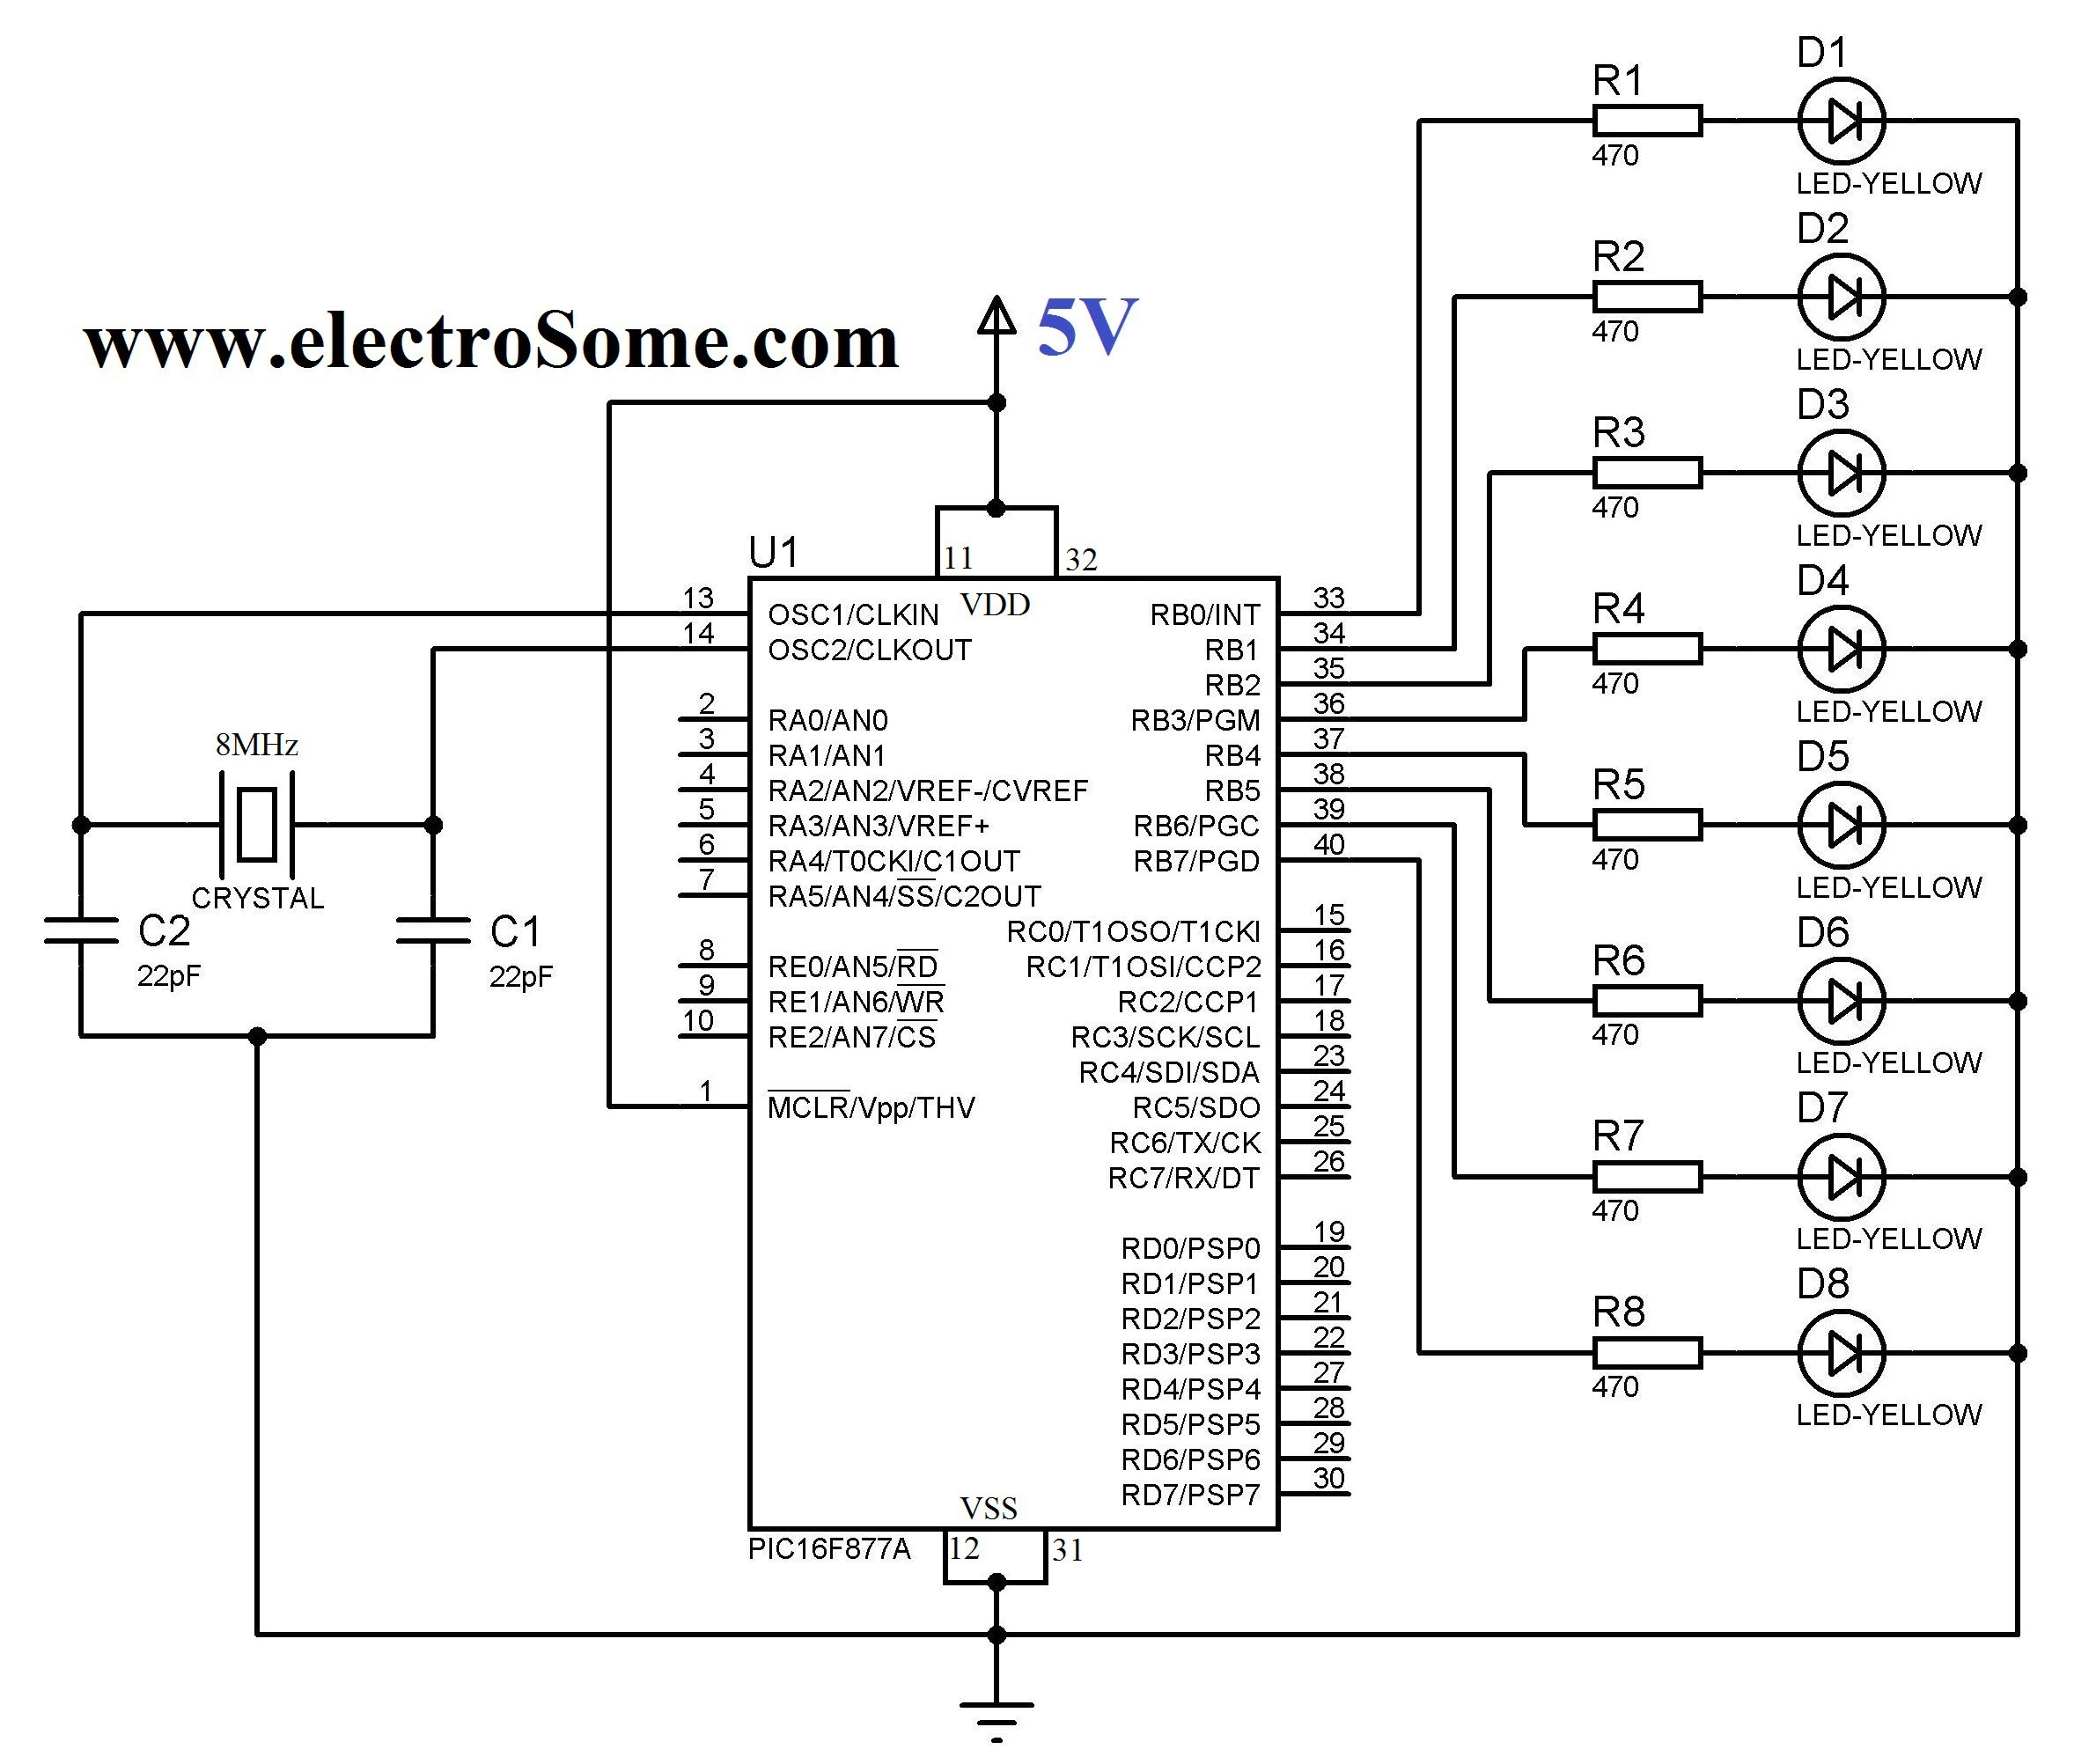 New Circuits Page 154 Circuitlab 555 Pwm Circuit For Driving A Bunch Of Pc Case Fans Pulse Blinking Led Pic Microcontroller Hi Tech C